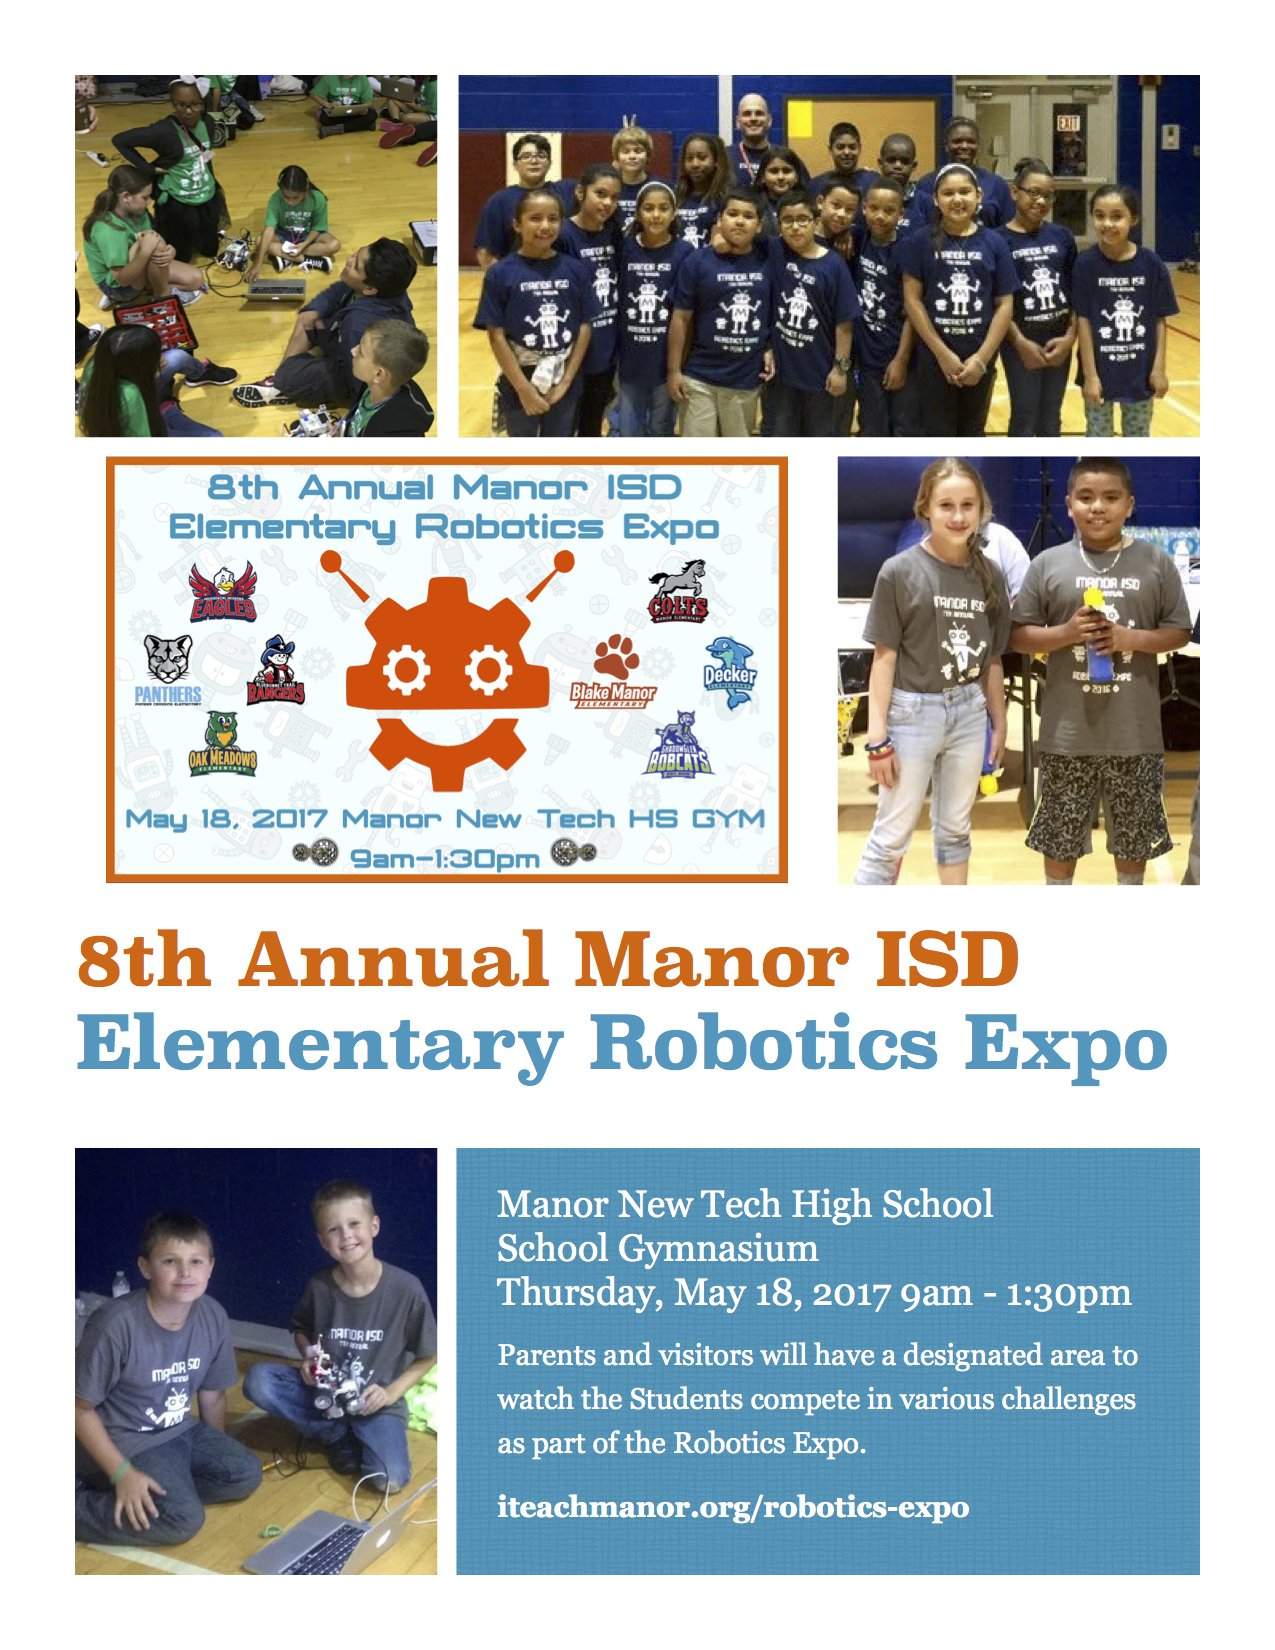 Has it been 8 years already? Our #ManorISD Robotics Expo is Tomorrow at 9AM-1:30PM in the @ManorNewTech Gym. https://t.co/fkdsLaLtCX https://t.co/4BldK2fxyJ